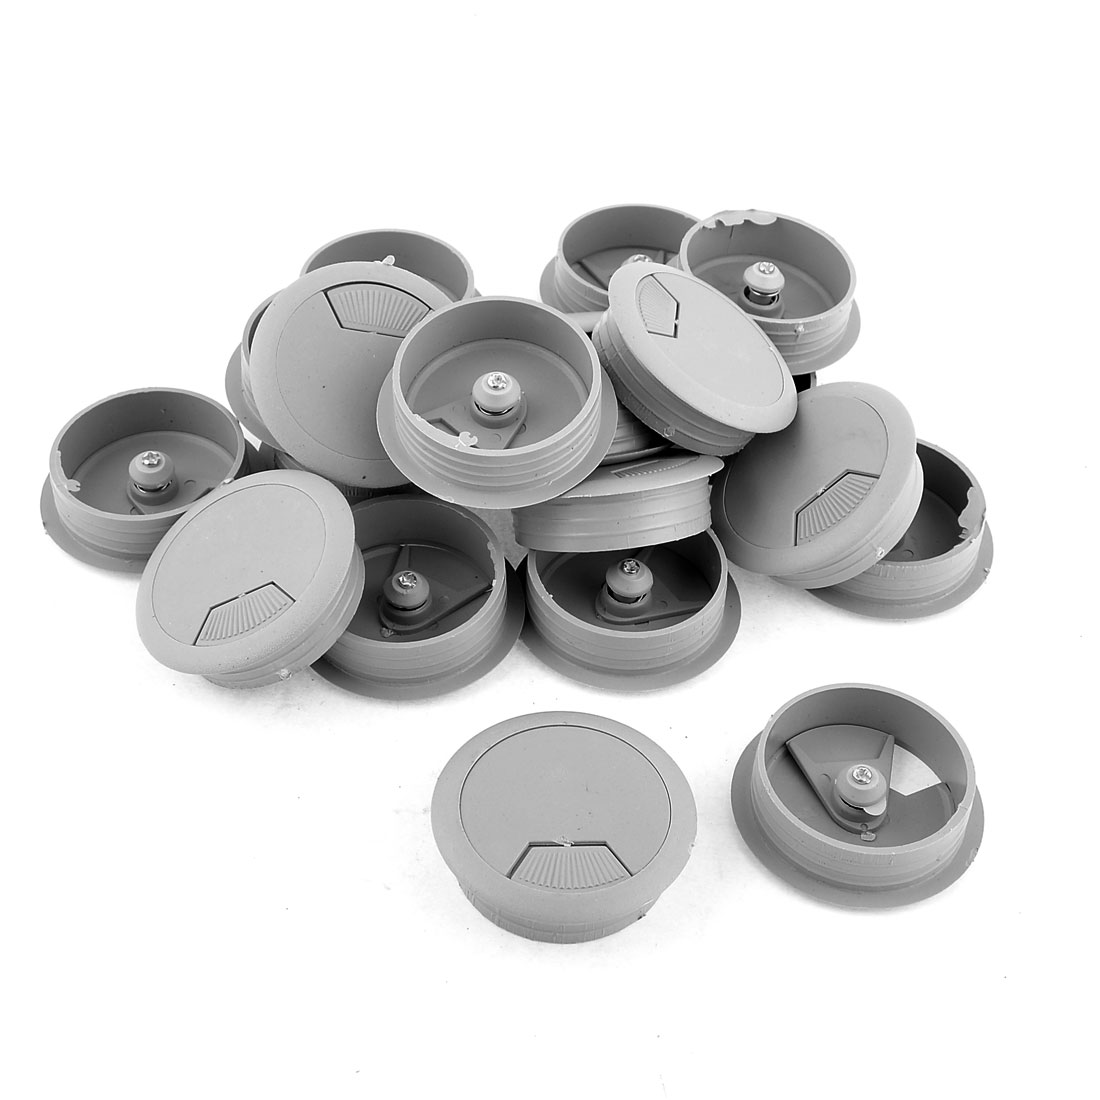 20 Pcs 50mm Gray Computer Desk Table Counter Top Cable Wire Grommets